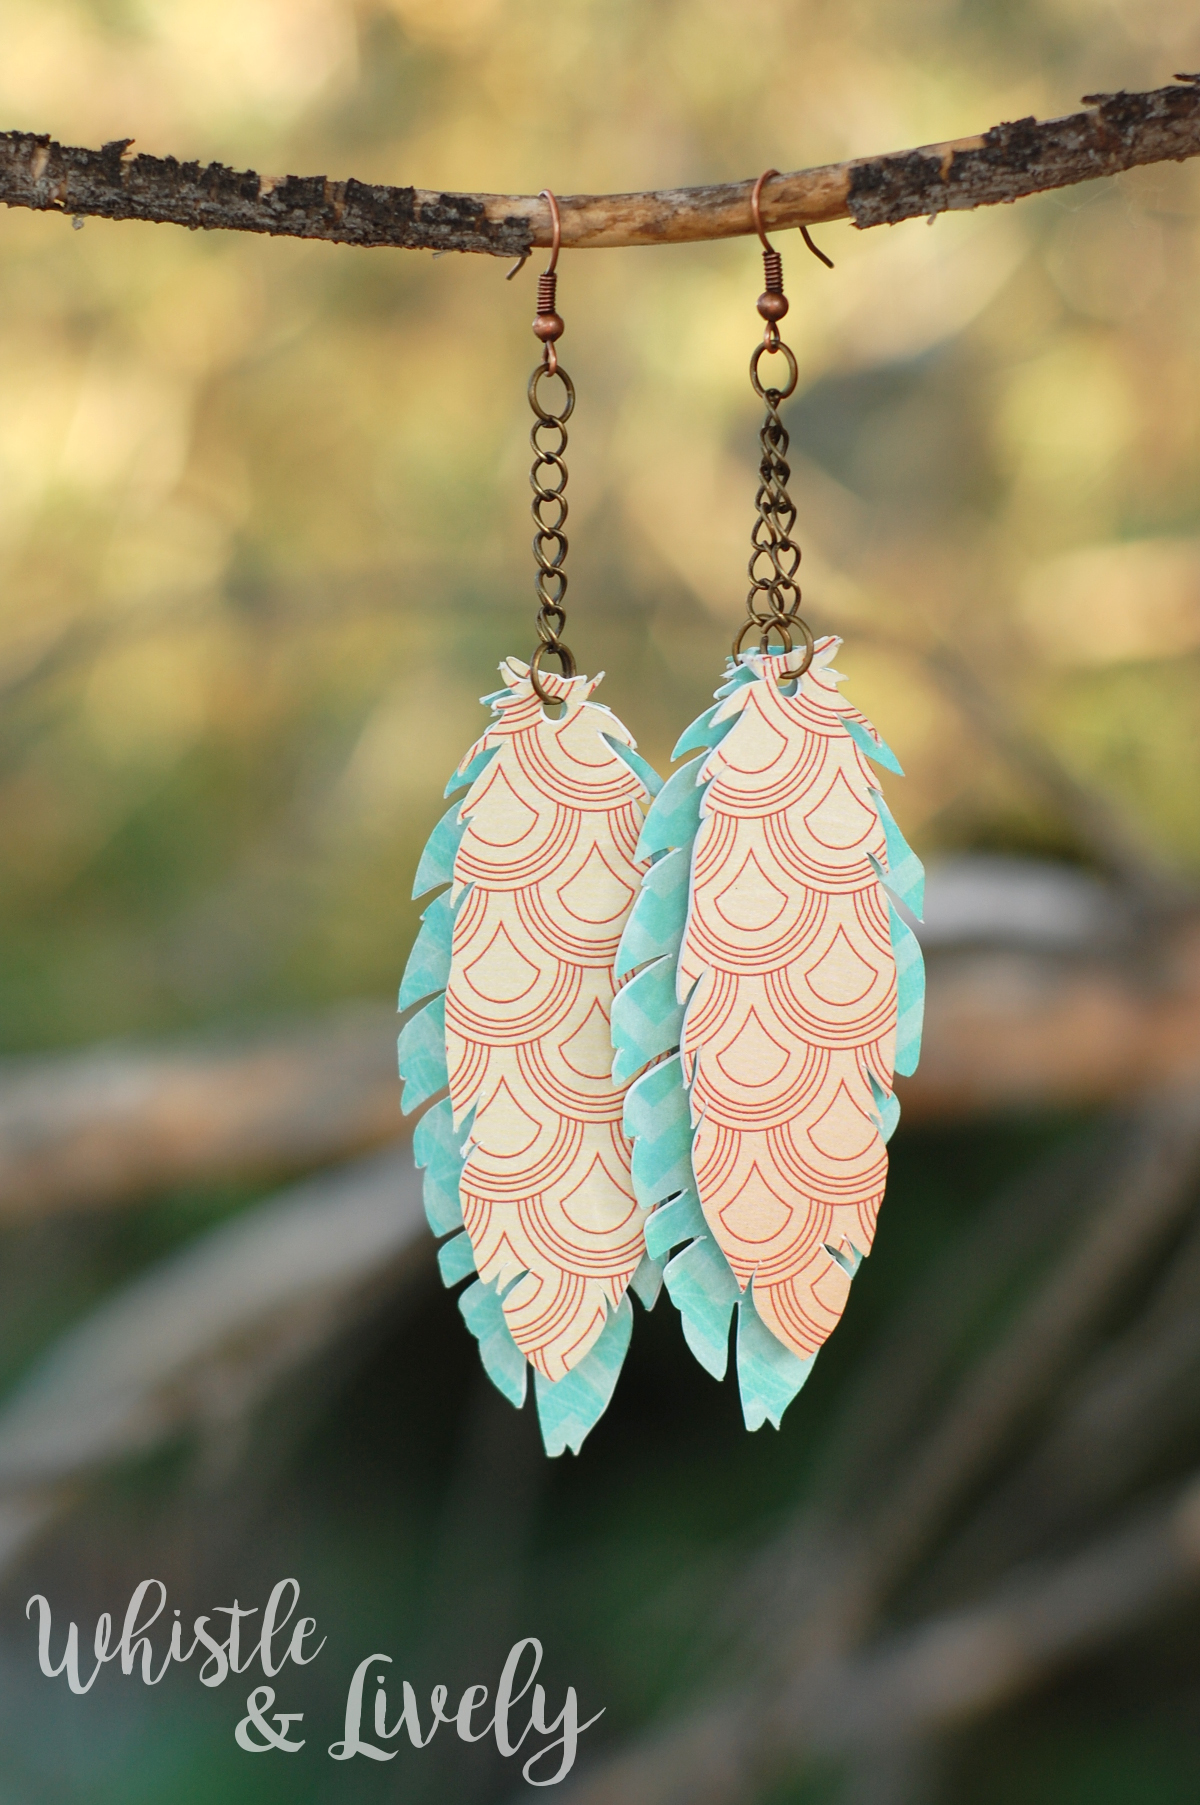 Paper Feather Earrings - Make these pretty earrings with paper and findings! Make a pair in each color, they are quick and easy!